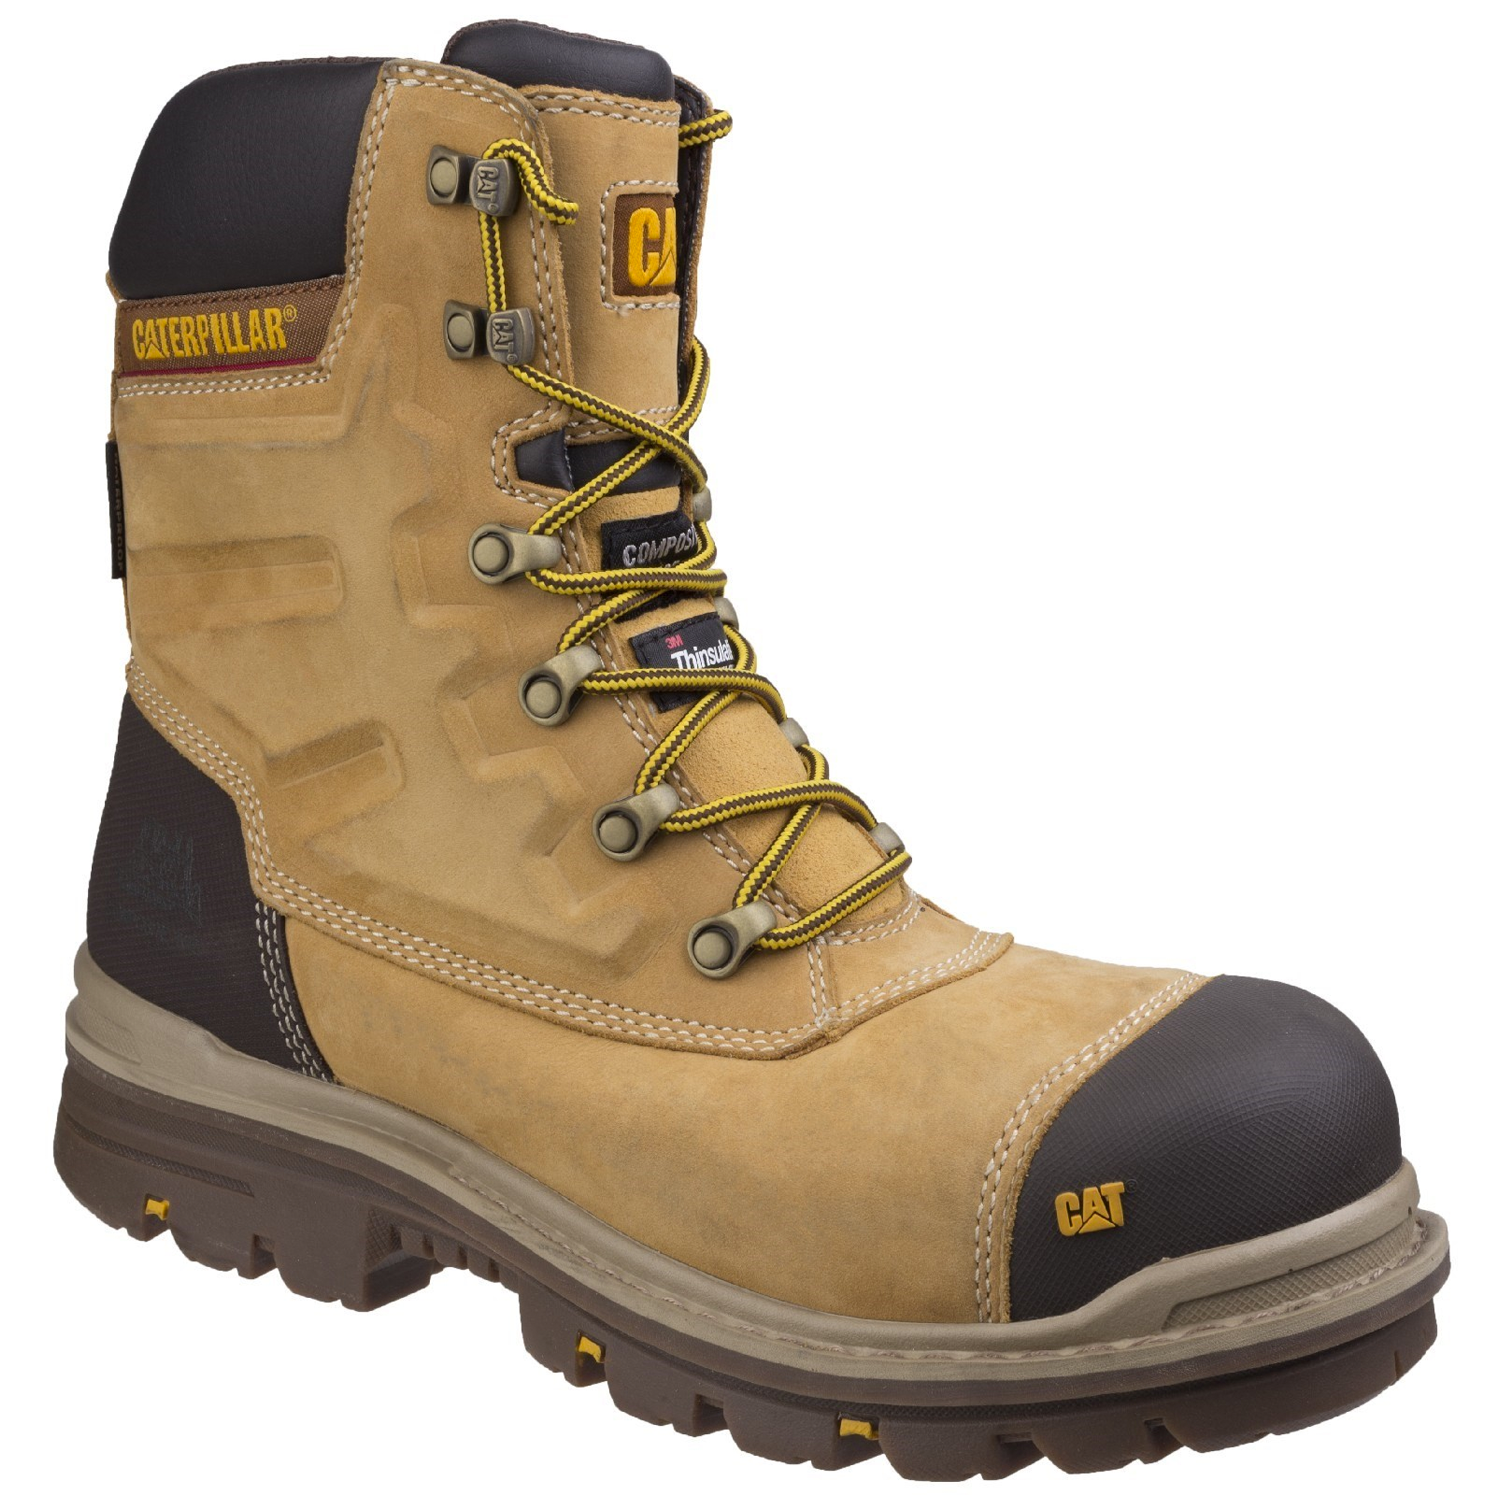 Caterpillar Cat Premier S3 Honey Safety